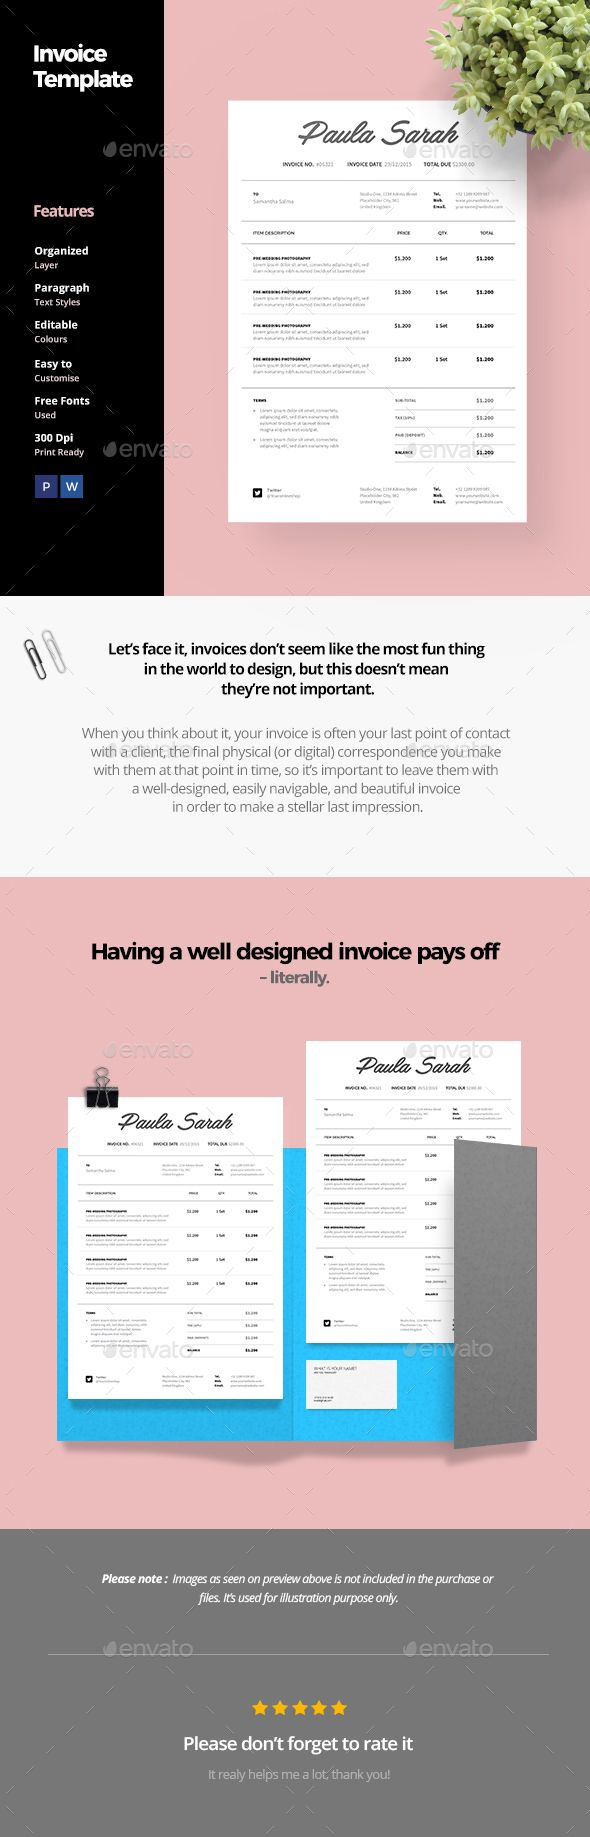 best ideas about invoice template invoice design invoice template proposals invoices stationery here